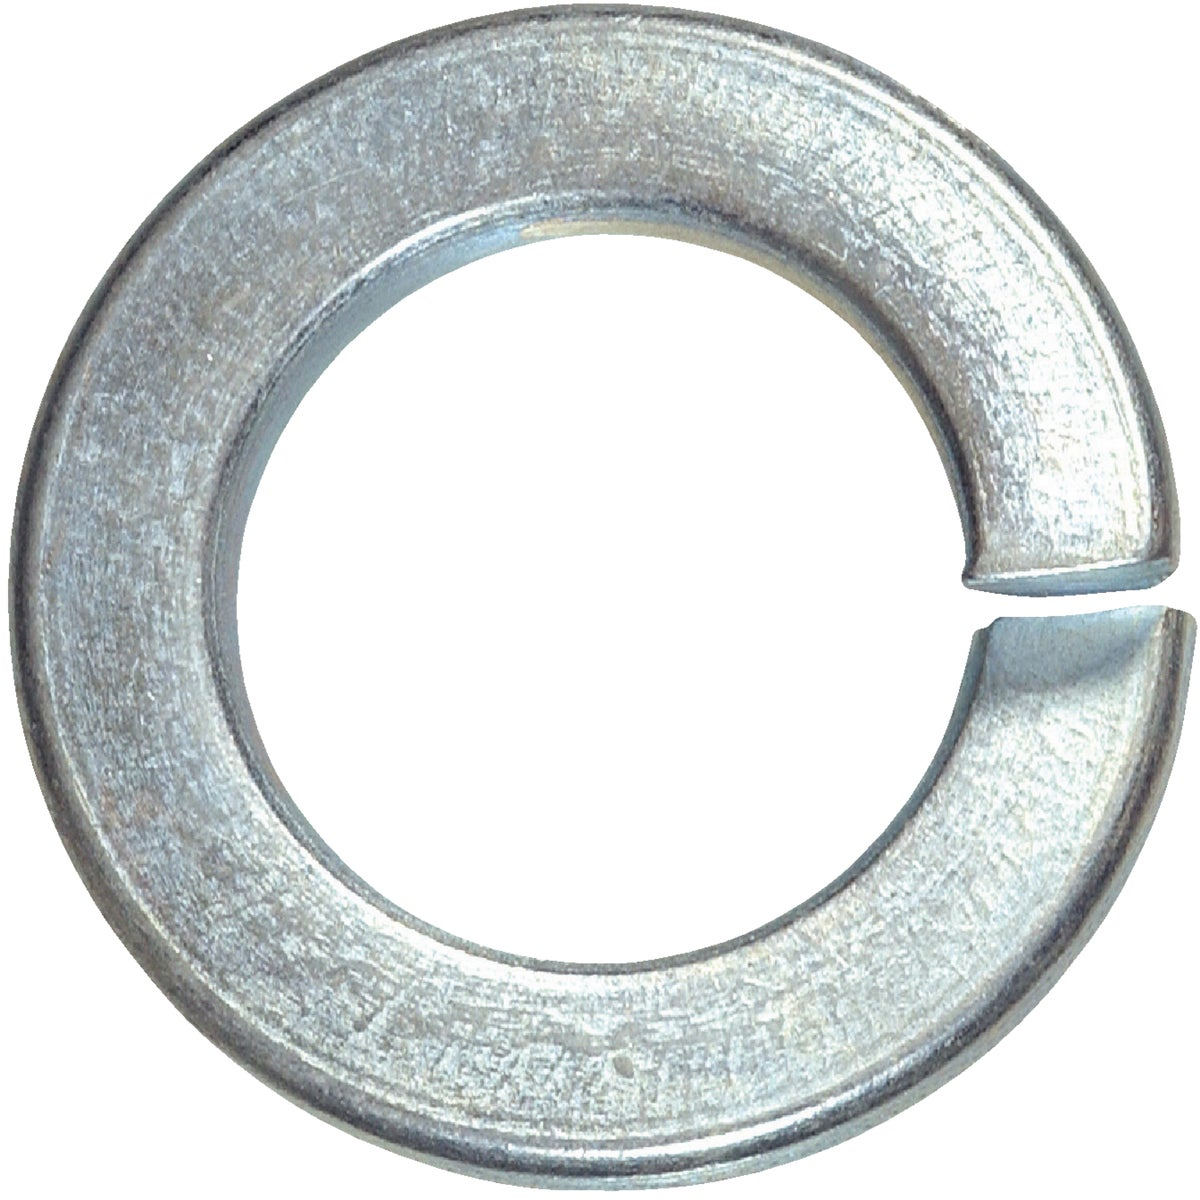 "50PC 1/2"" LOCK WASHER - 300030 by Hillman Fastener"